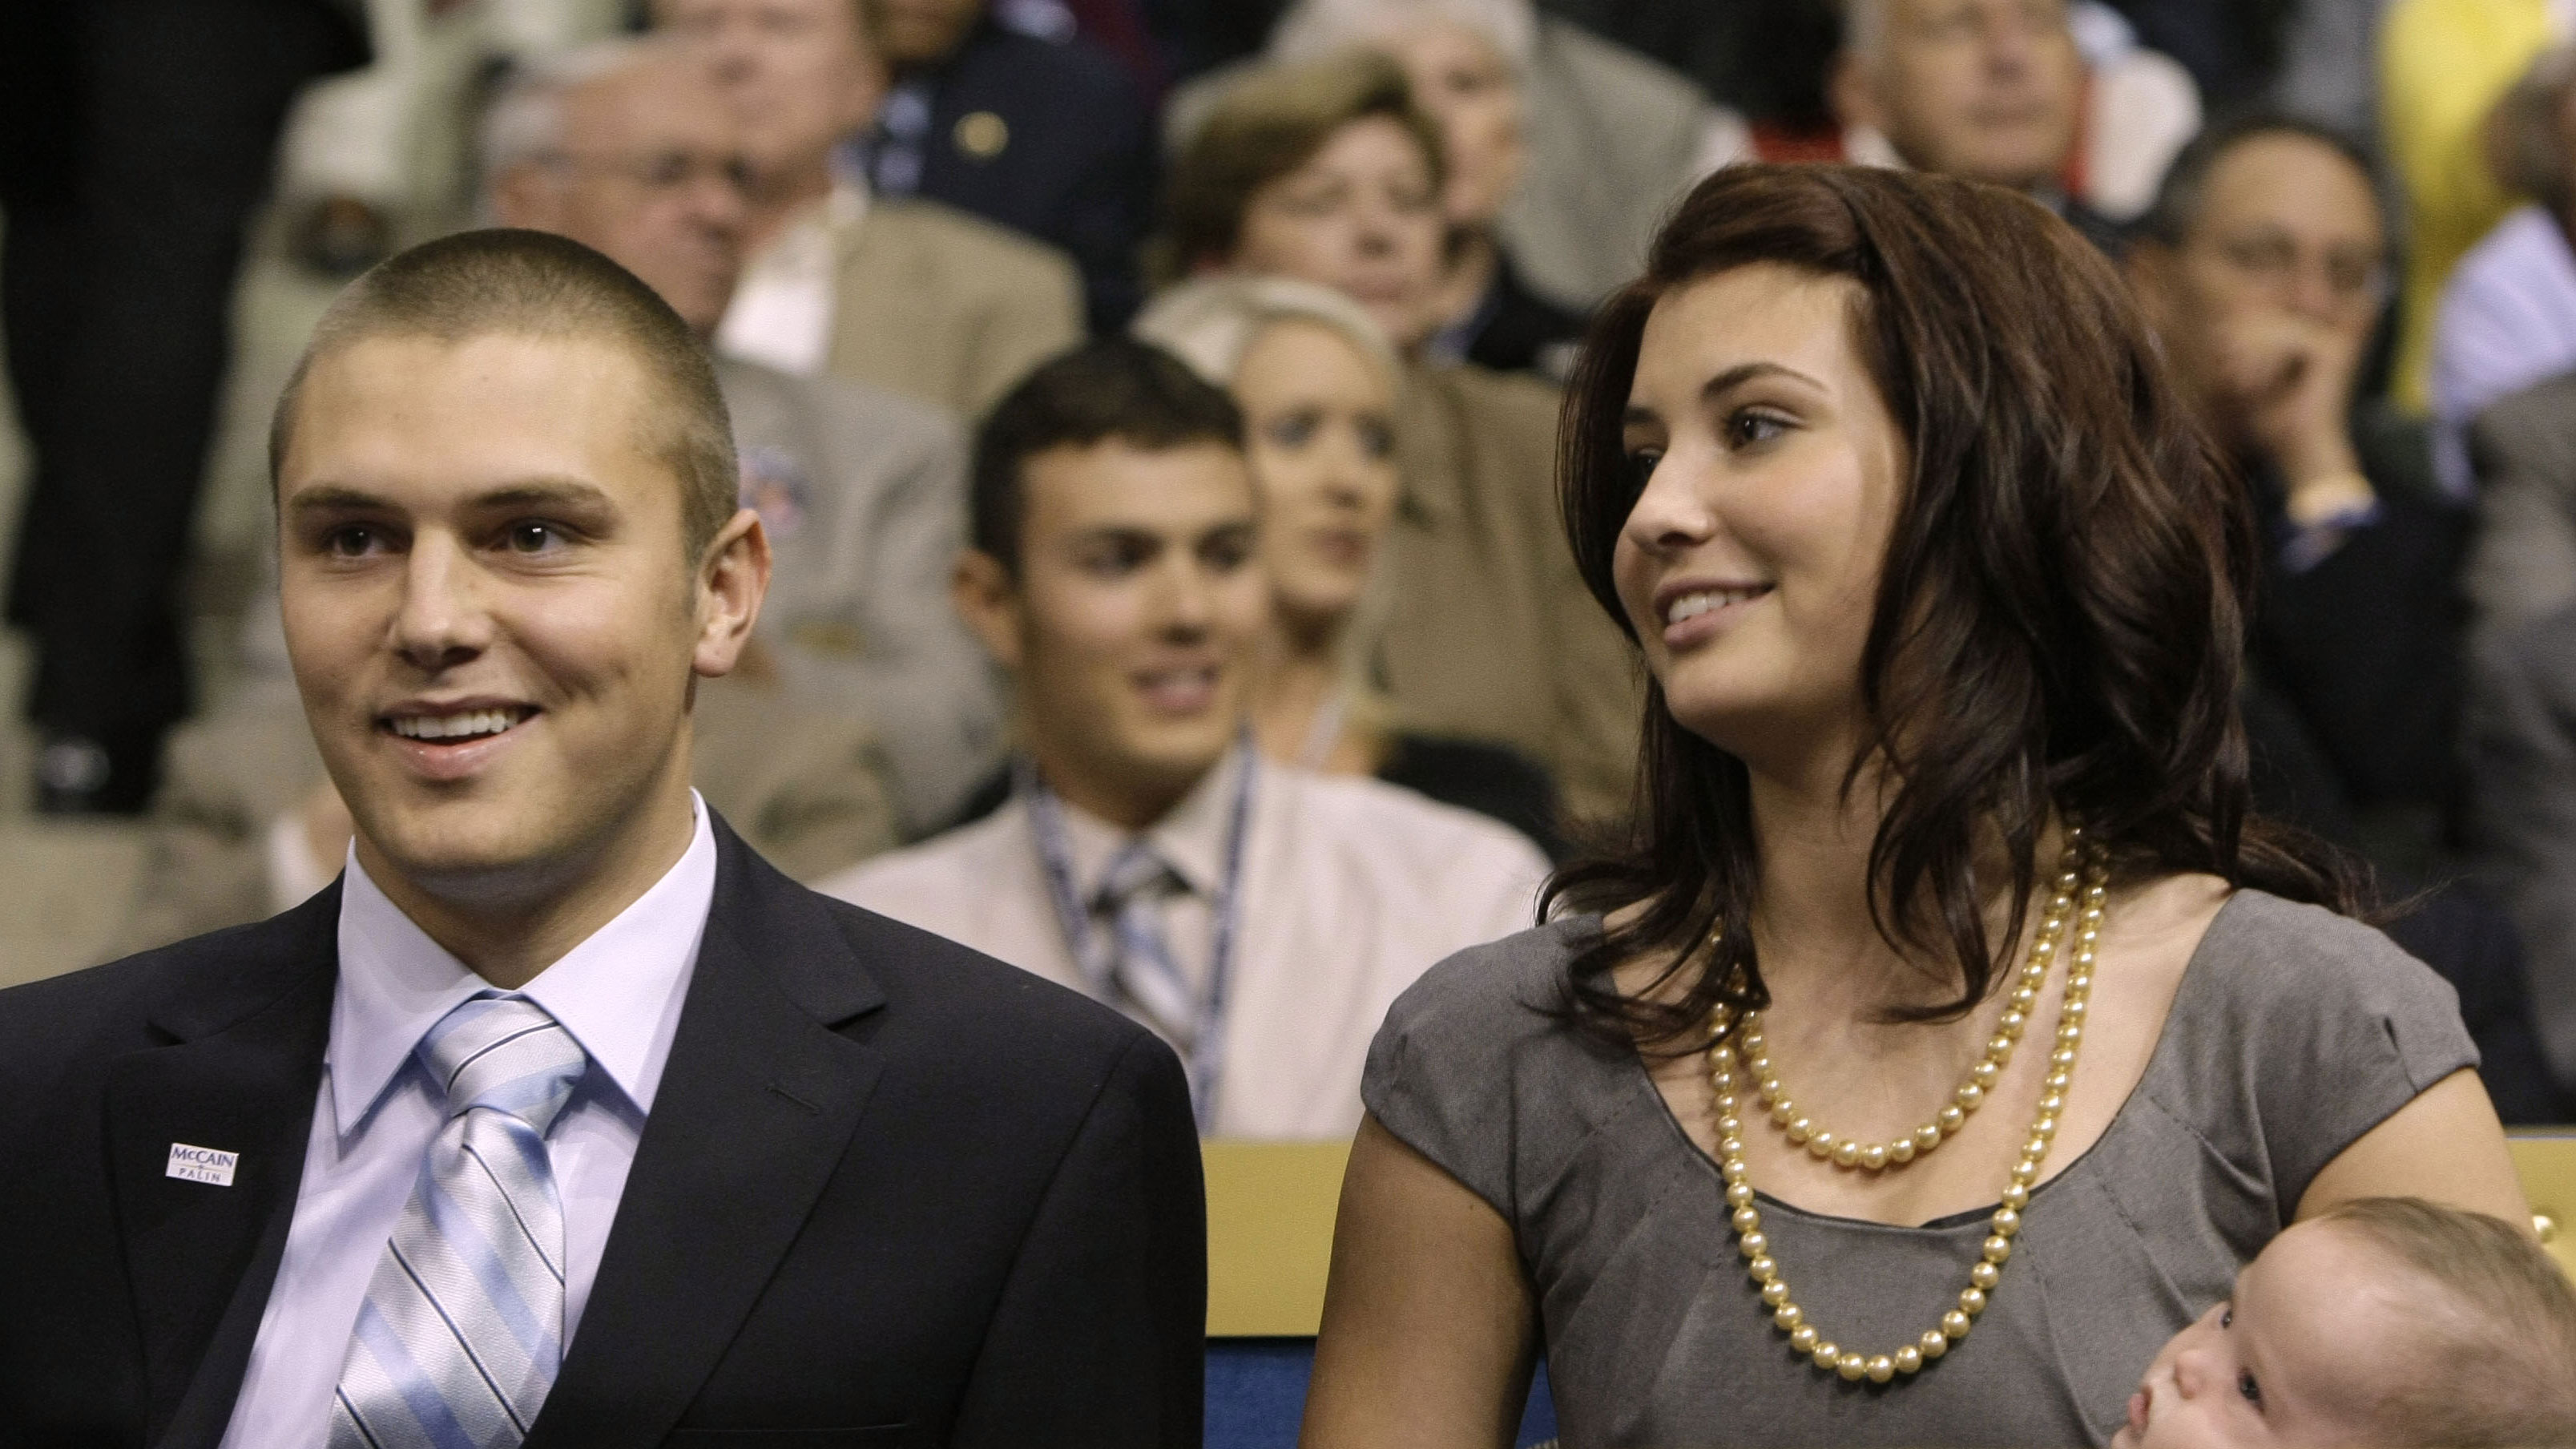 Track Palin, son of Sarah Palin, during the Republican National Convention in St. Paul, Minn., Wednesday, Sept. 3, 2008. (AP Photo/Charles Rex Arbogast)